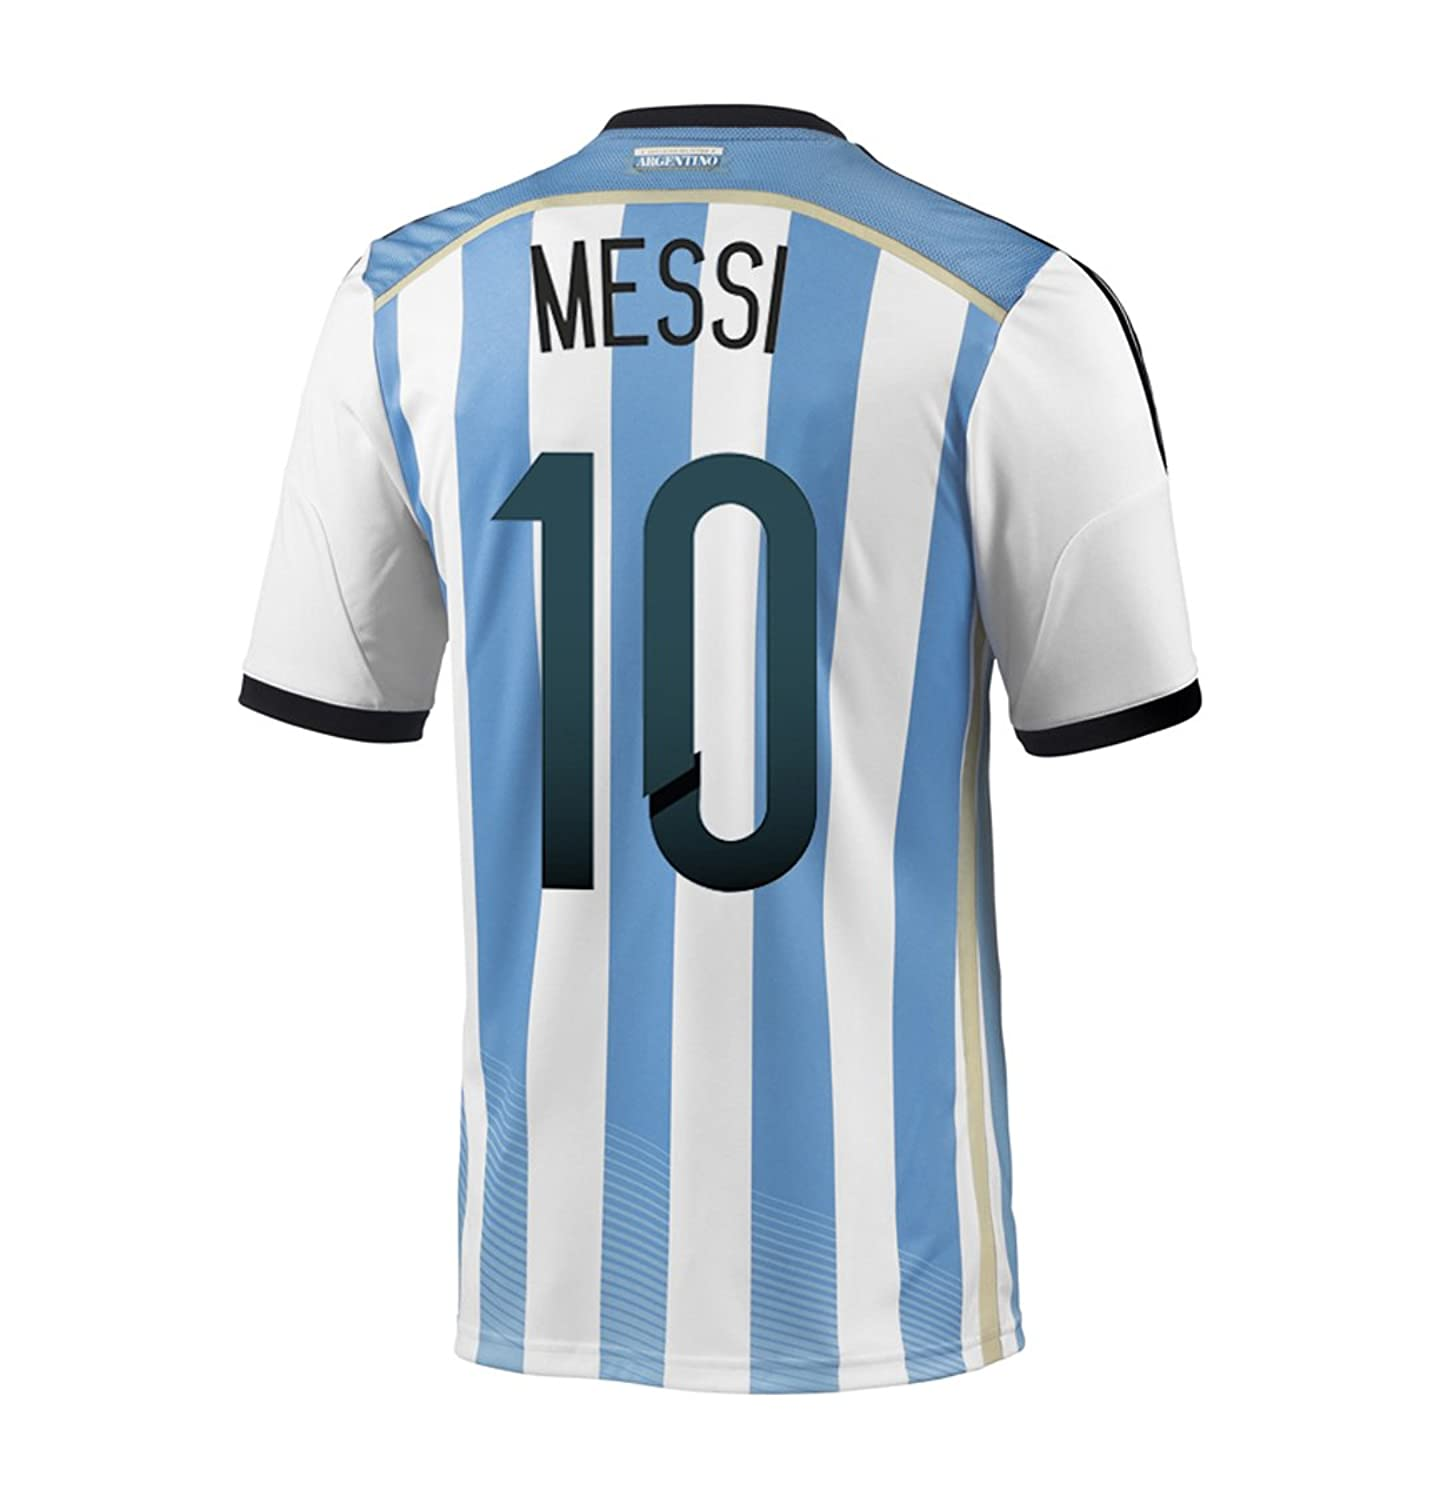 ... Amazon.com Adidas MESSI 10 Argentina Home Jersey World Cup 2014 (XL)  Soccer ...